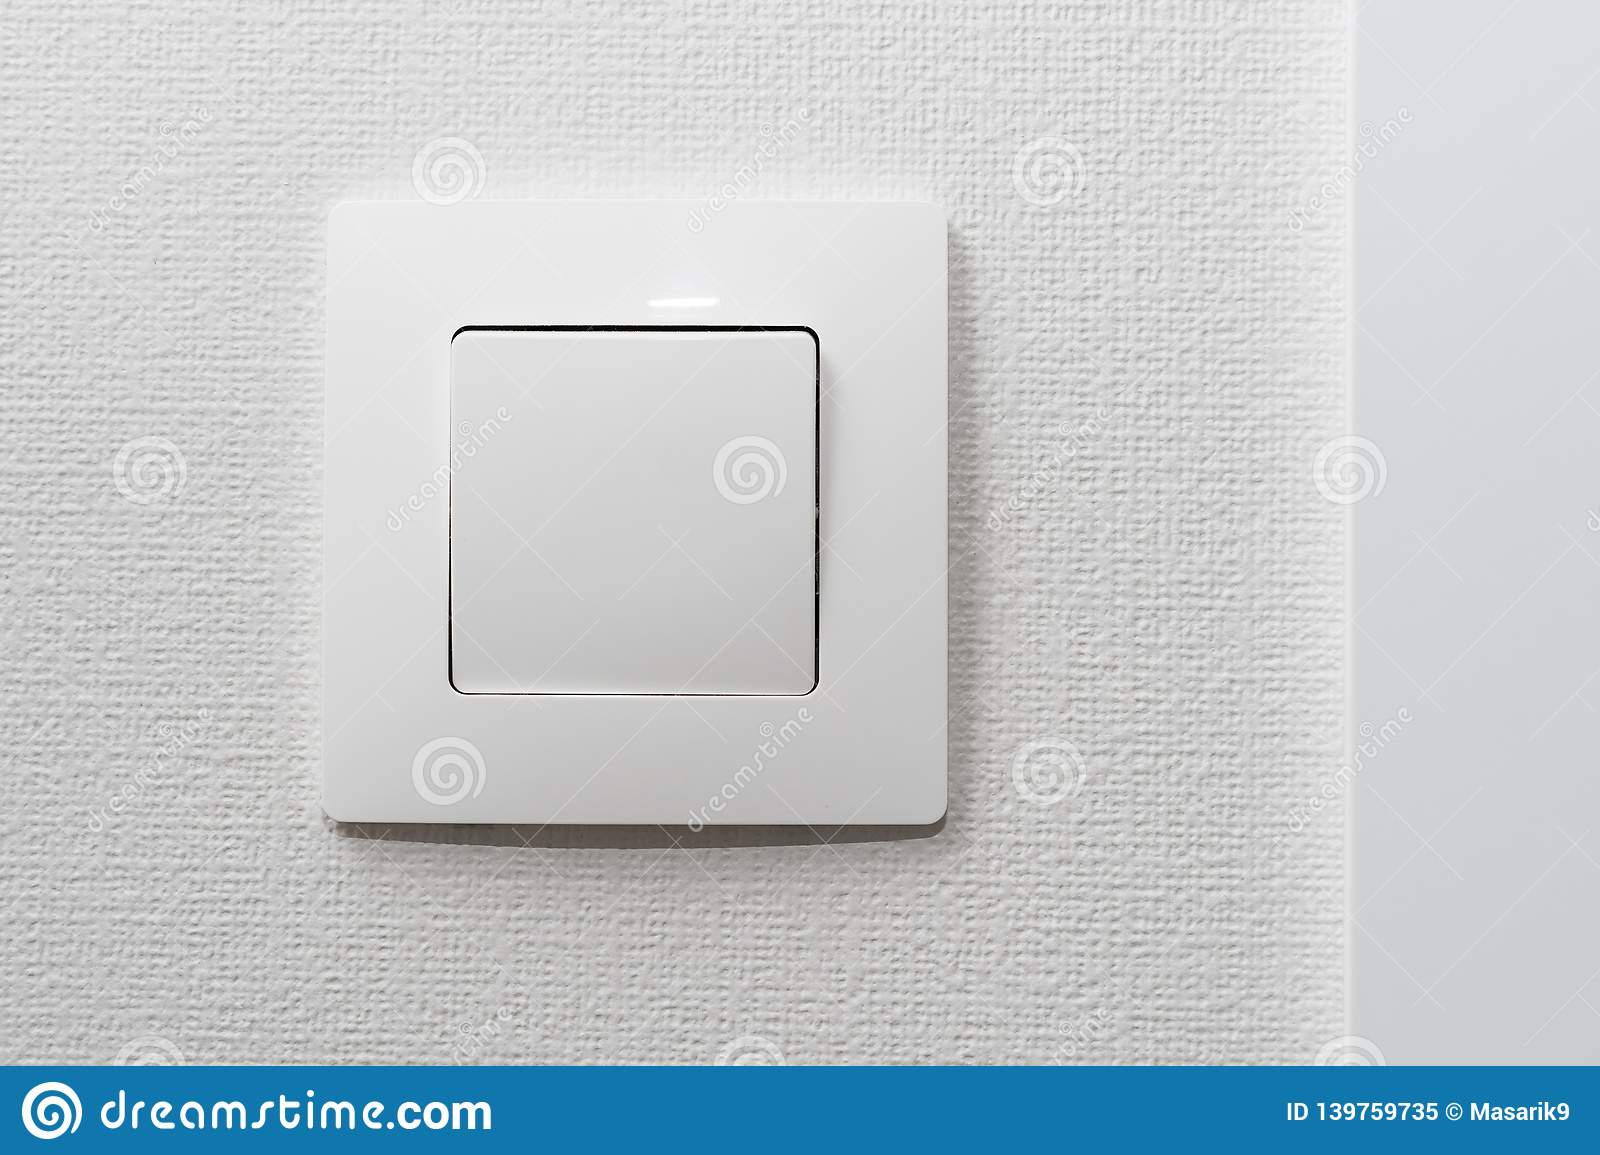 Simple White Light Switch Turn On Or Turn Off The Lights